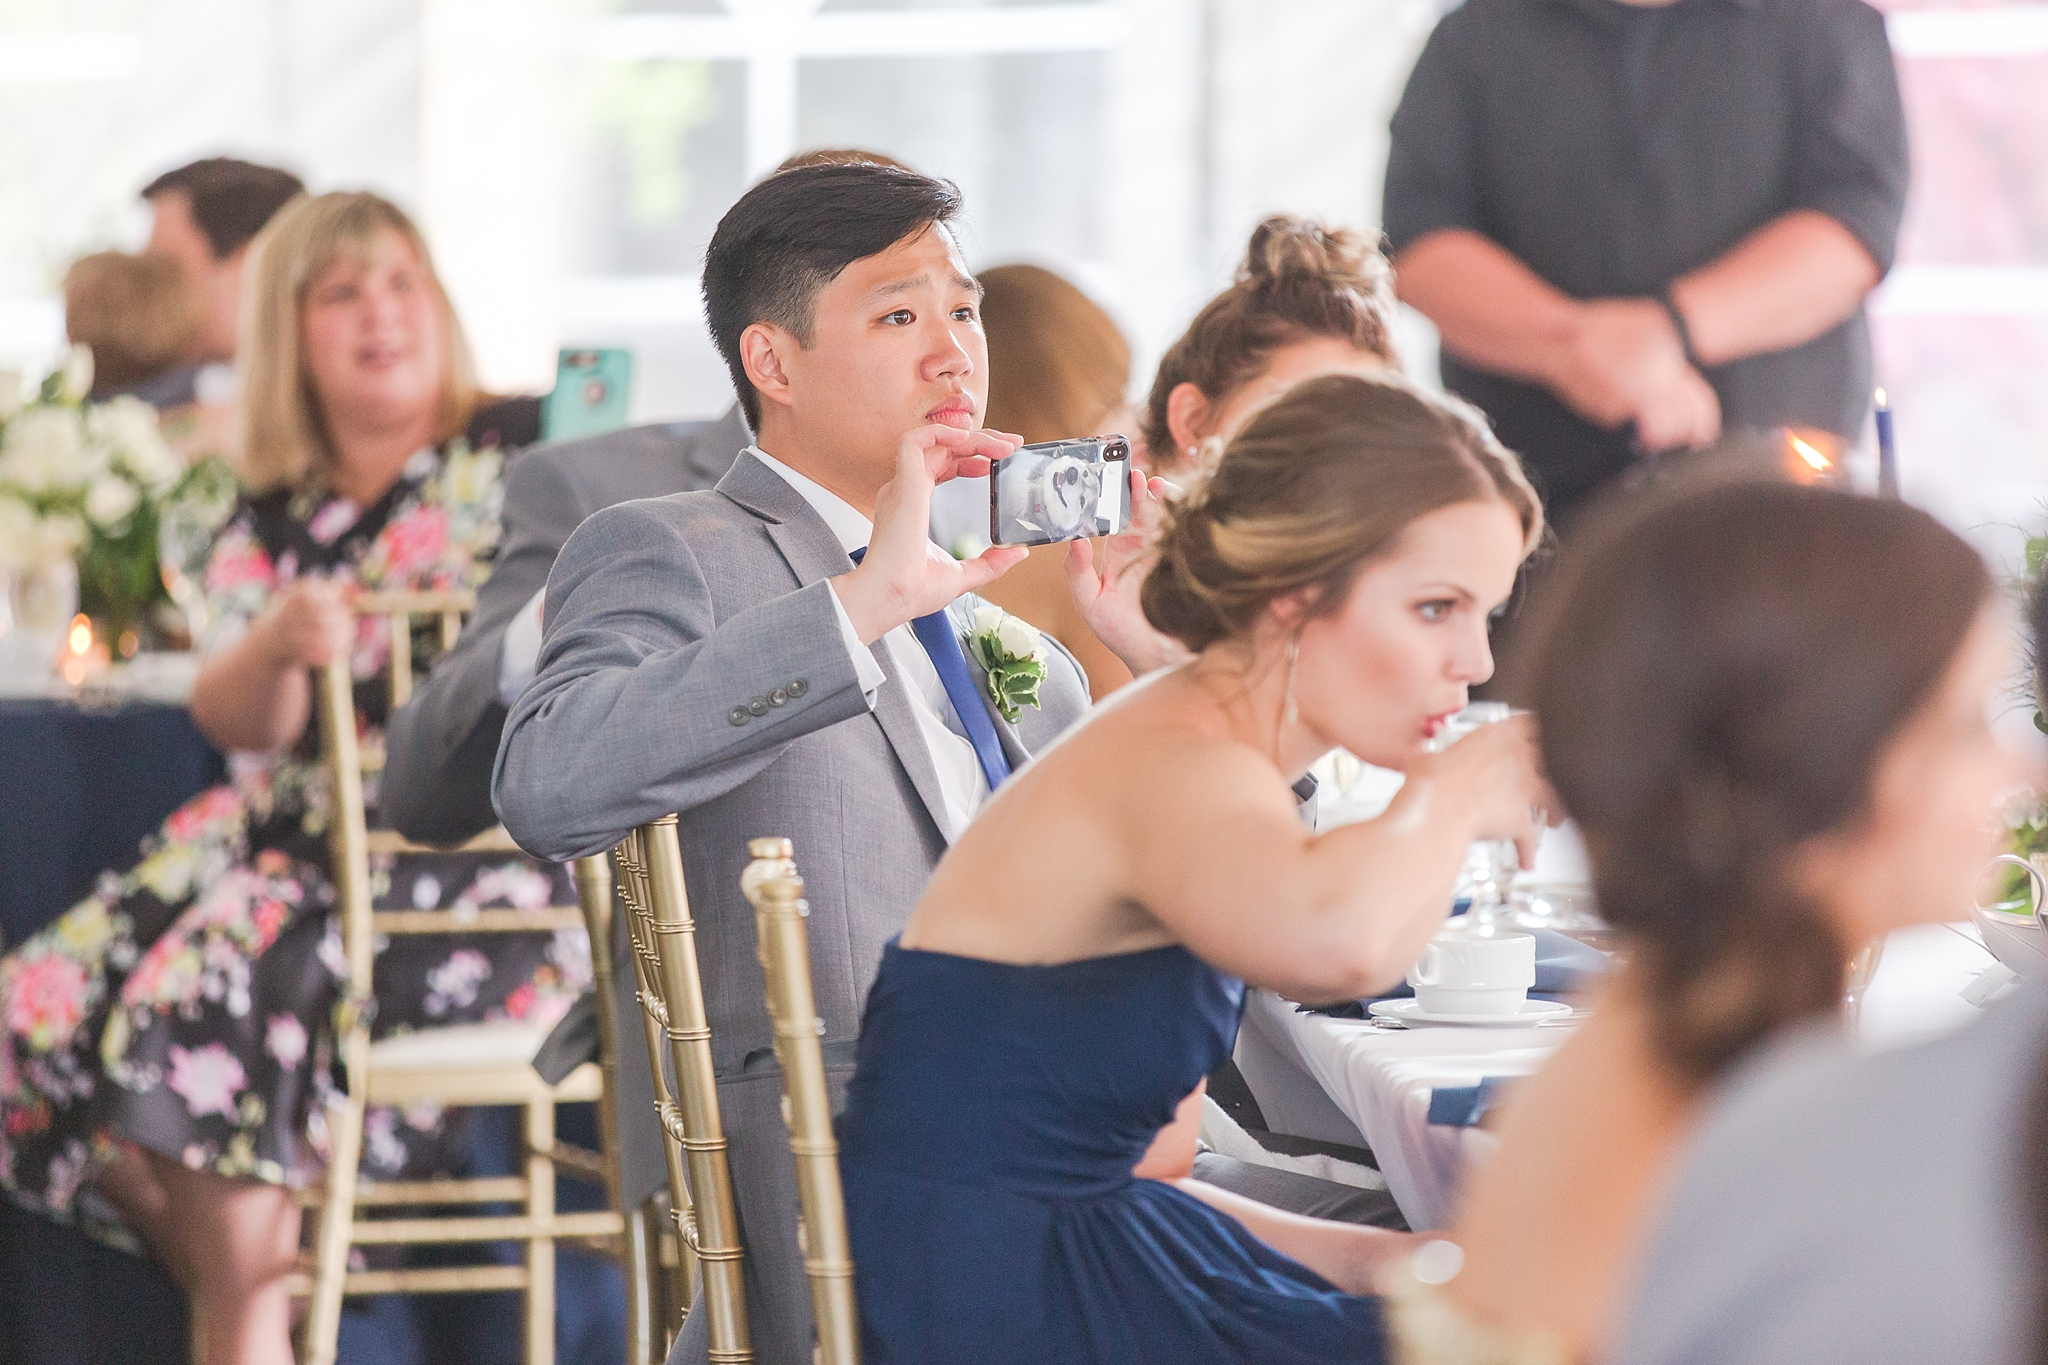 joyful-candid-laid-back-wedding-photos-in-ann-arbor-michigan-and-at-the-eagle-crest-golf-resort-by-courtney-carolyn-photography_0098.jpg